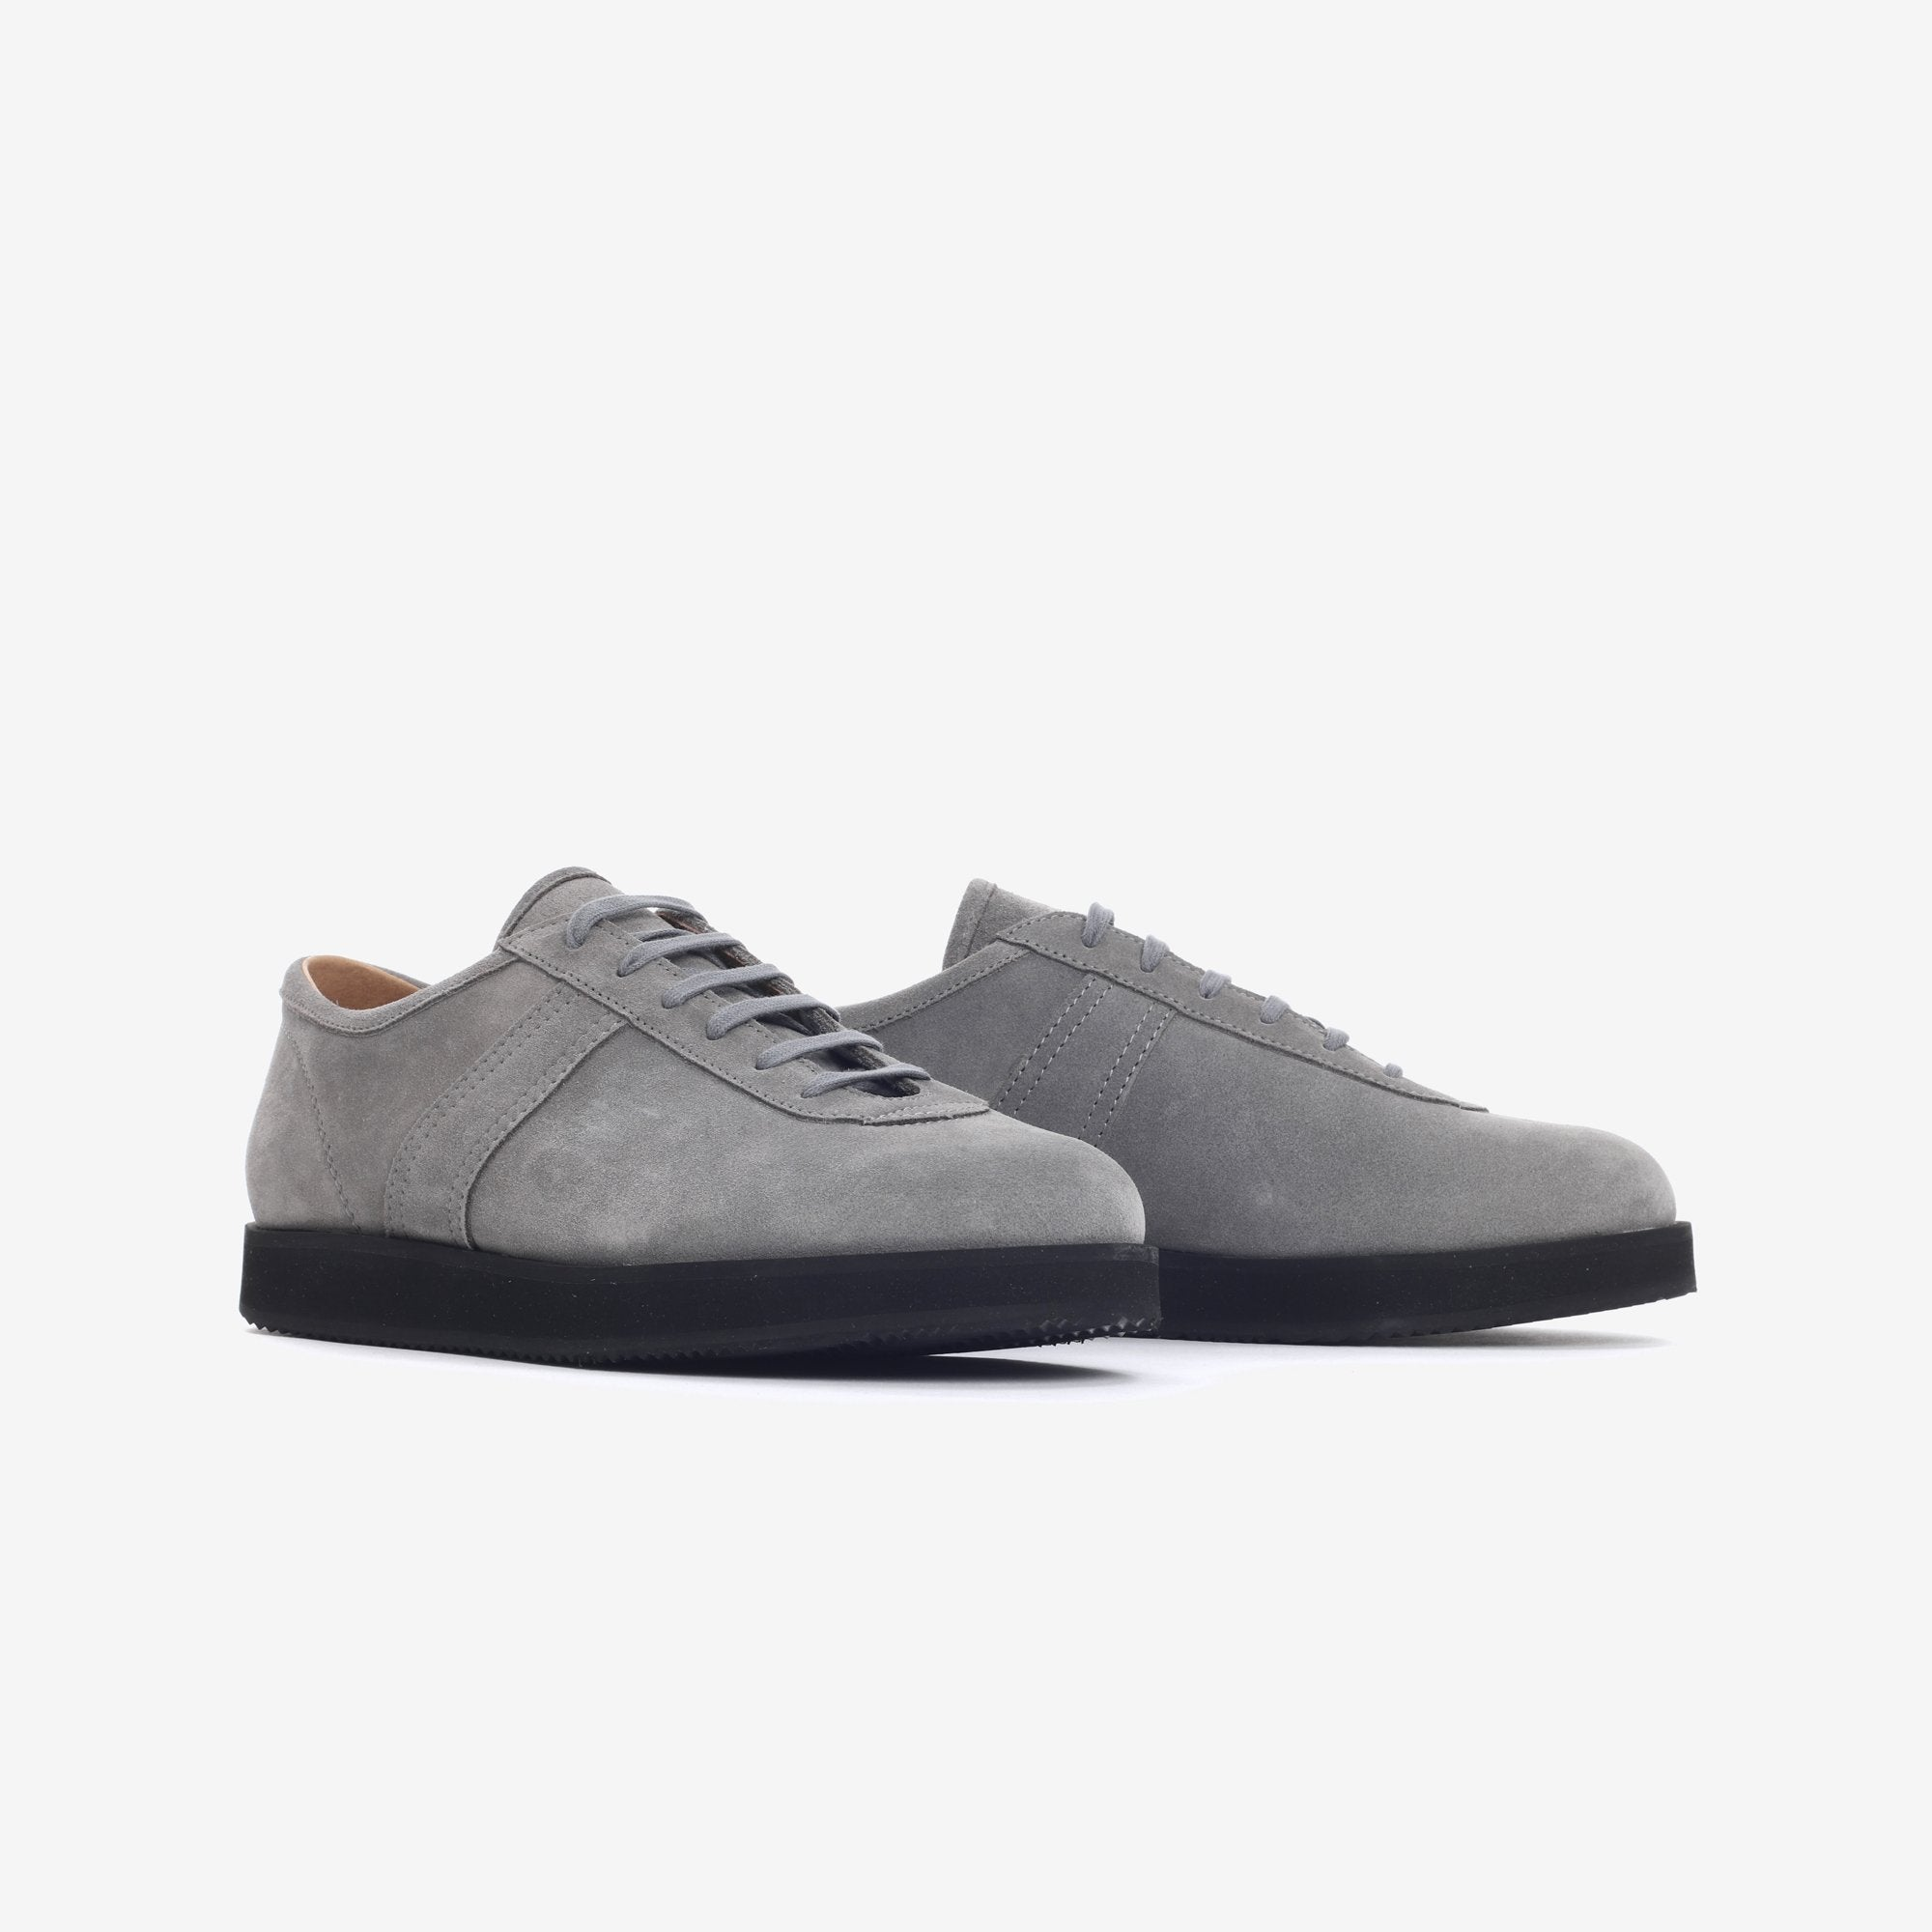 rof-1980s-german-military-grey-suede-202-SS-1.jpg